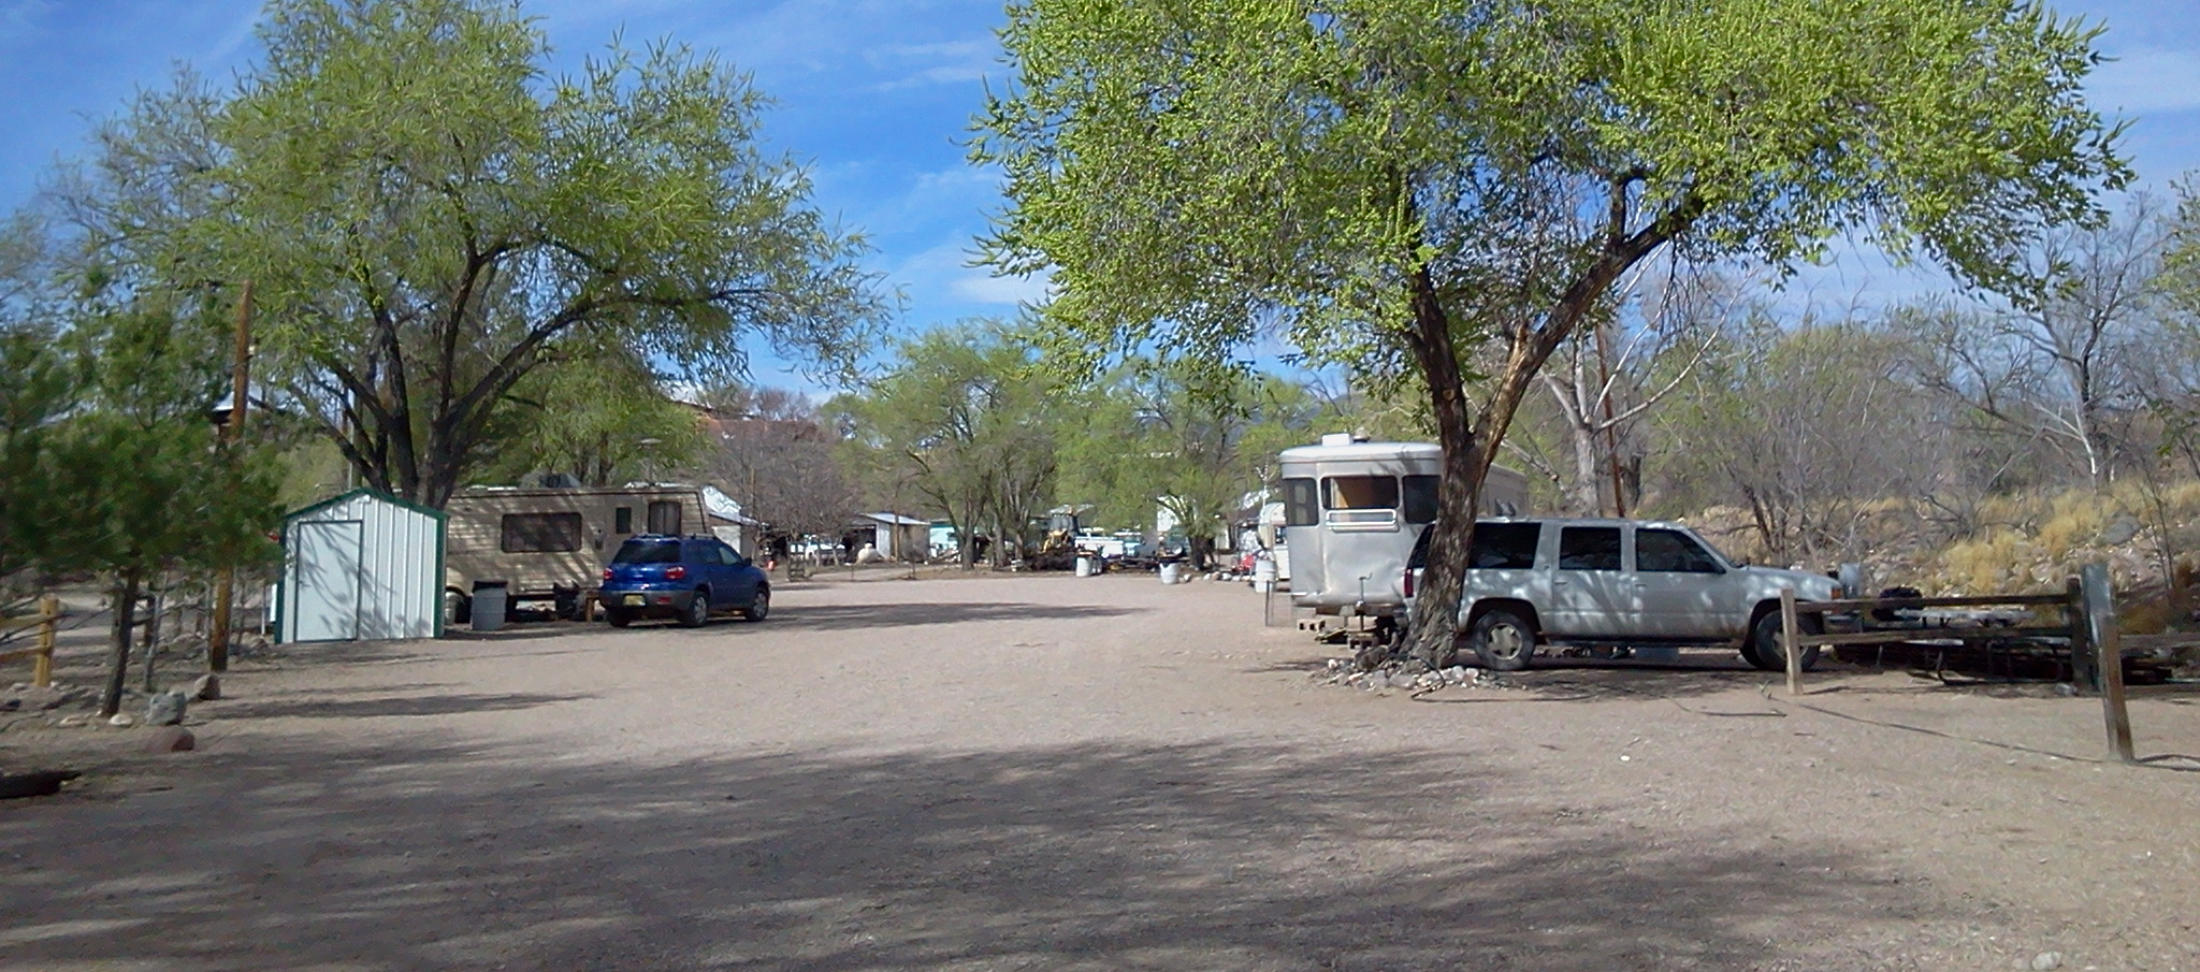 Rv camping without water hookup